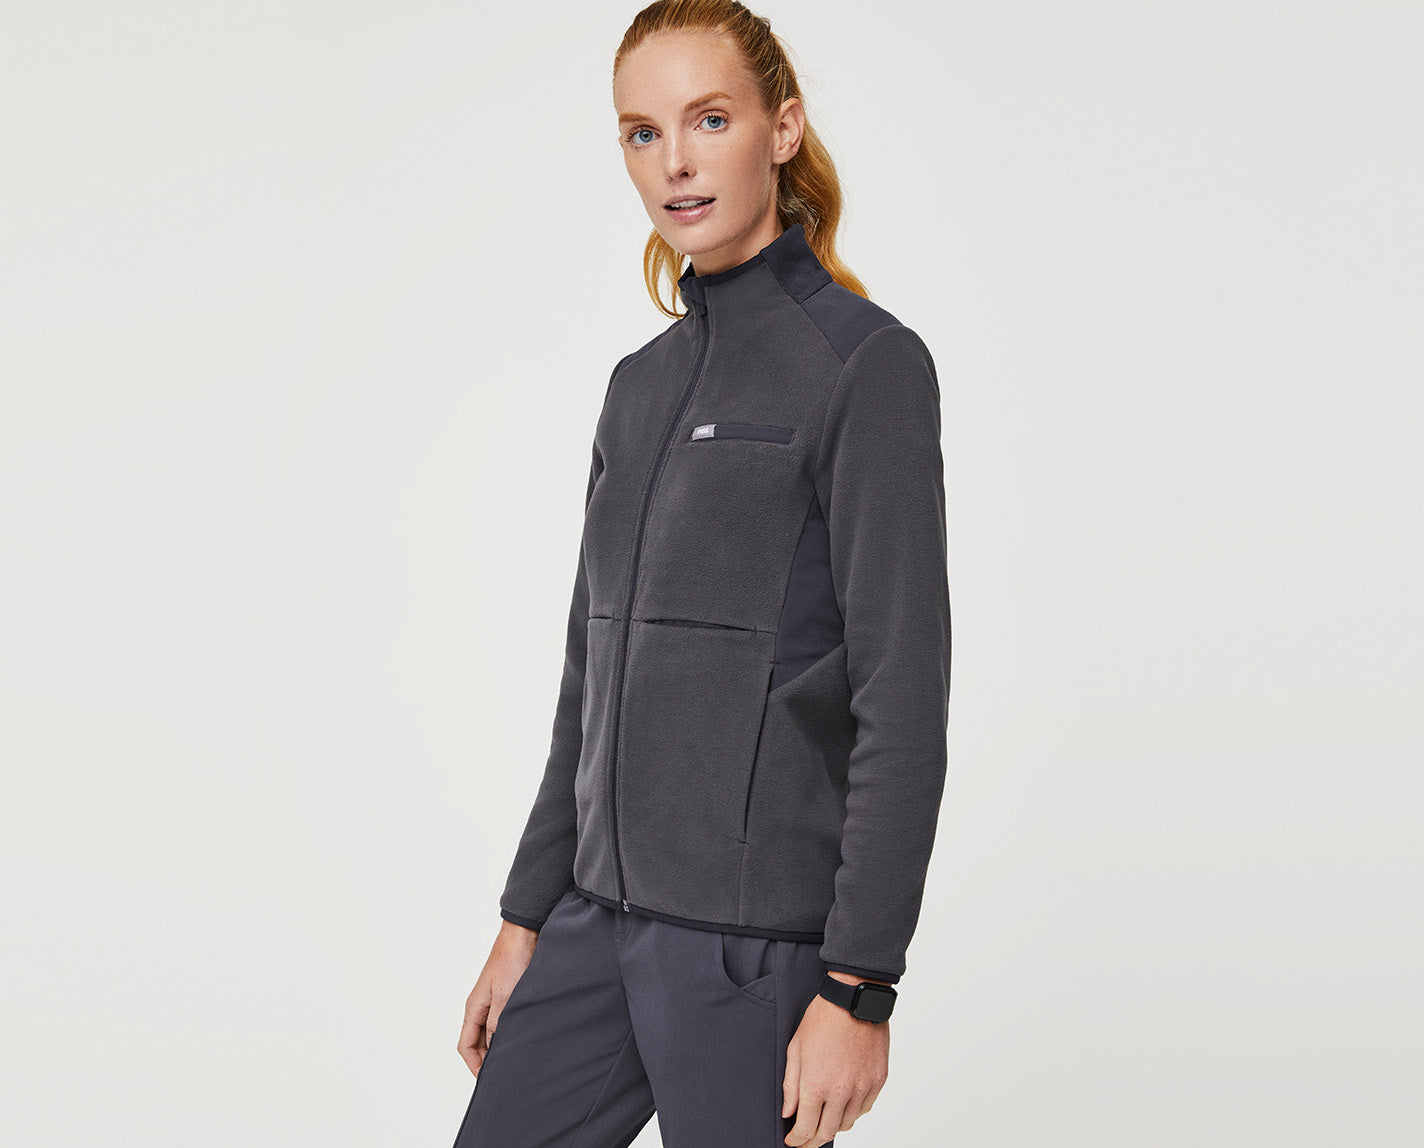 This jacket has it all: warmth, comfort, style and functionality. Made of a plush, anti-pilling fleece with FIONx fabric, it's the ideal layer to combat A/C-friendly hospitals or unpredictable weather patterns. Or the frozen food section of the grocery store. And, yes, of course it has lots of pockets